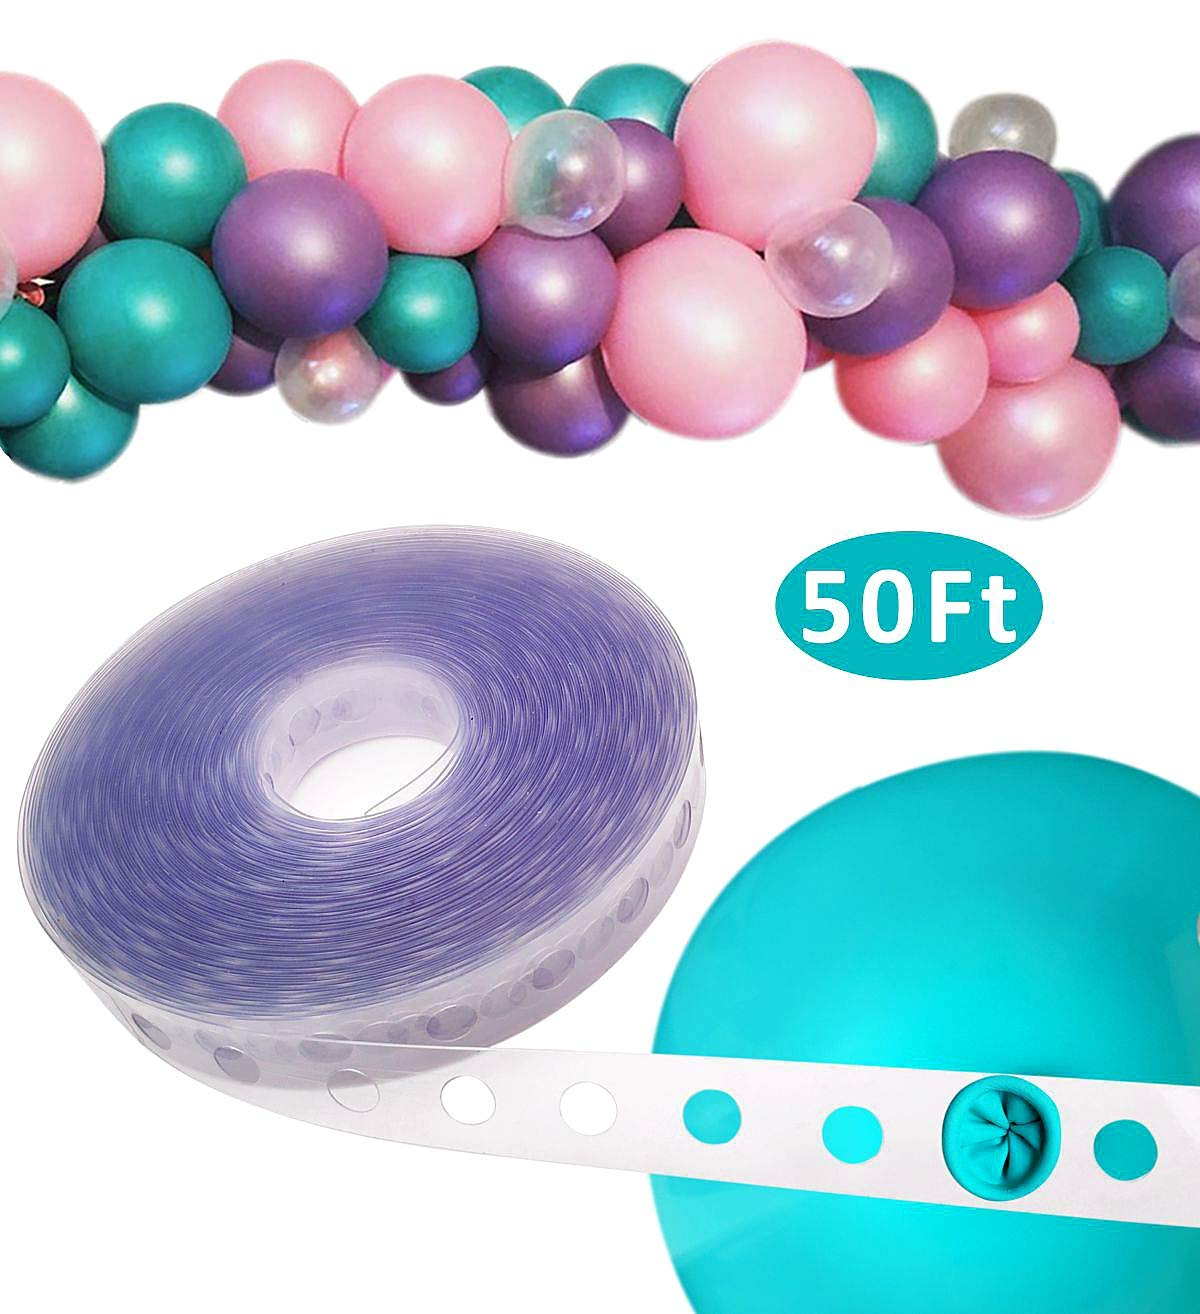 Balloon Decorating Strip Tape 50ft Long To Make Arch Garland Steamer For Birthday Wedding Baby Shower Party Decorations